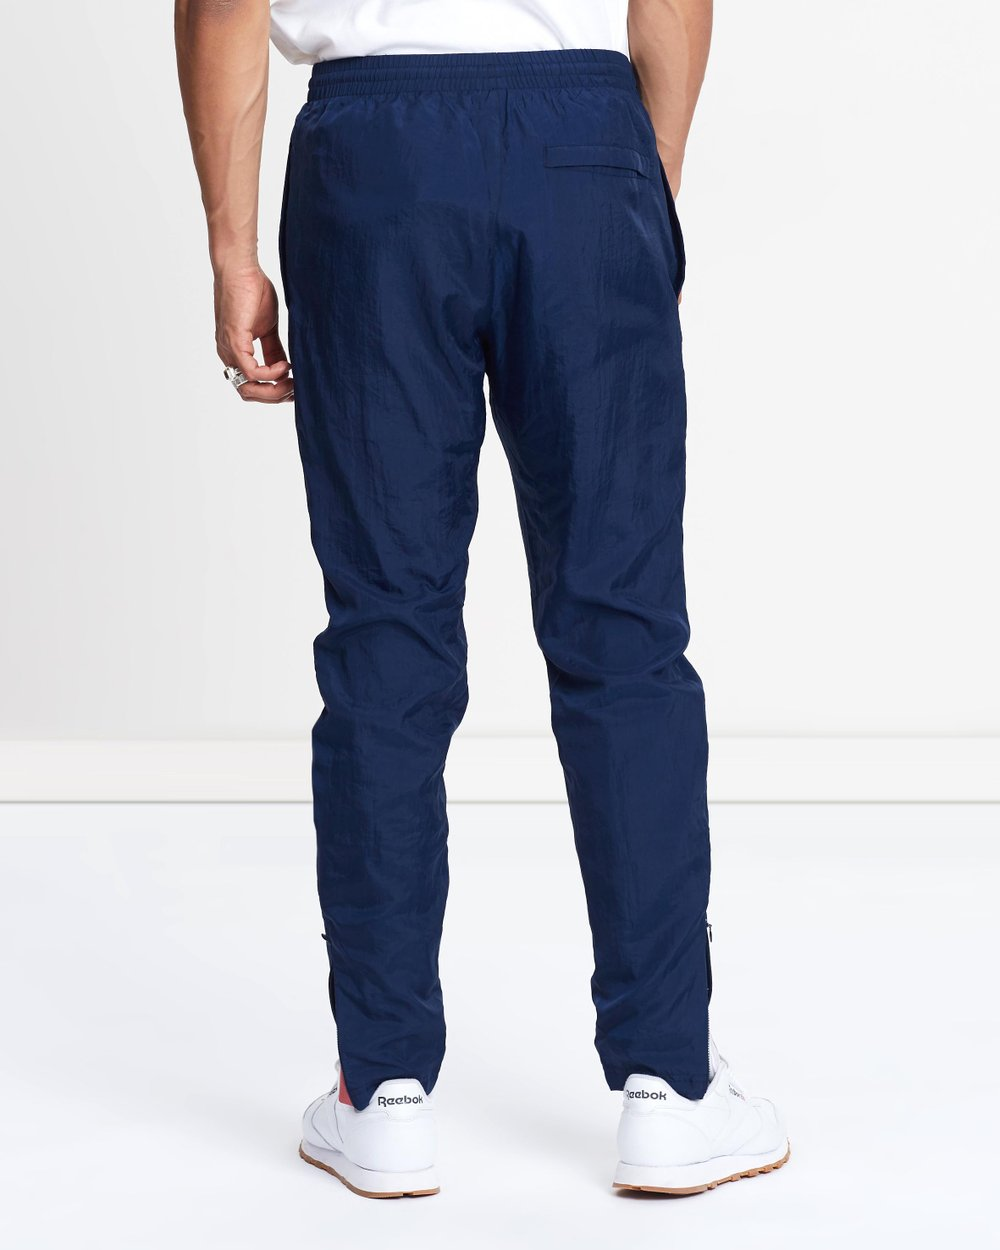 533f13ef78c5 Hush Olympic Trackpants by Reebok Online